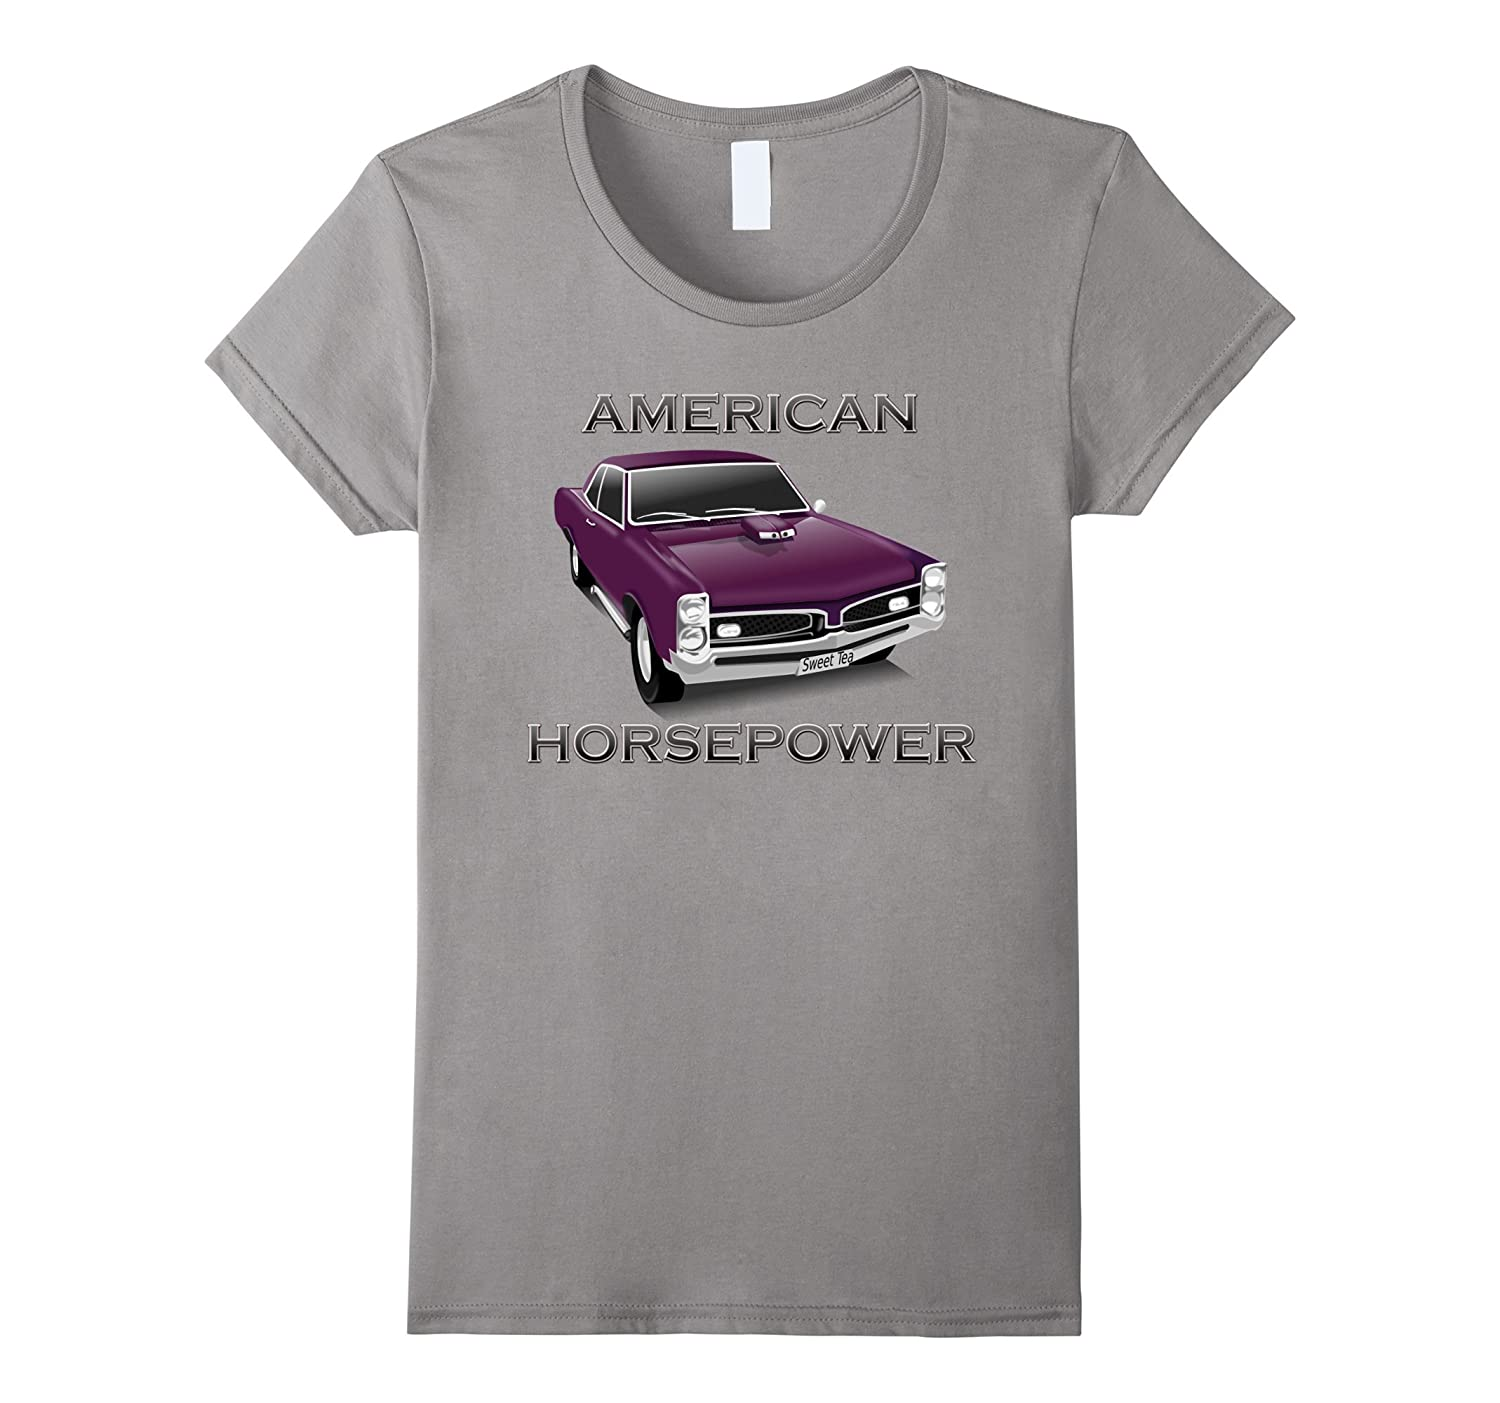 Amazon.com: American Horsepower Muscle Car Hot Rod Pony Car T-Shirt: Clothing